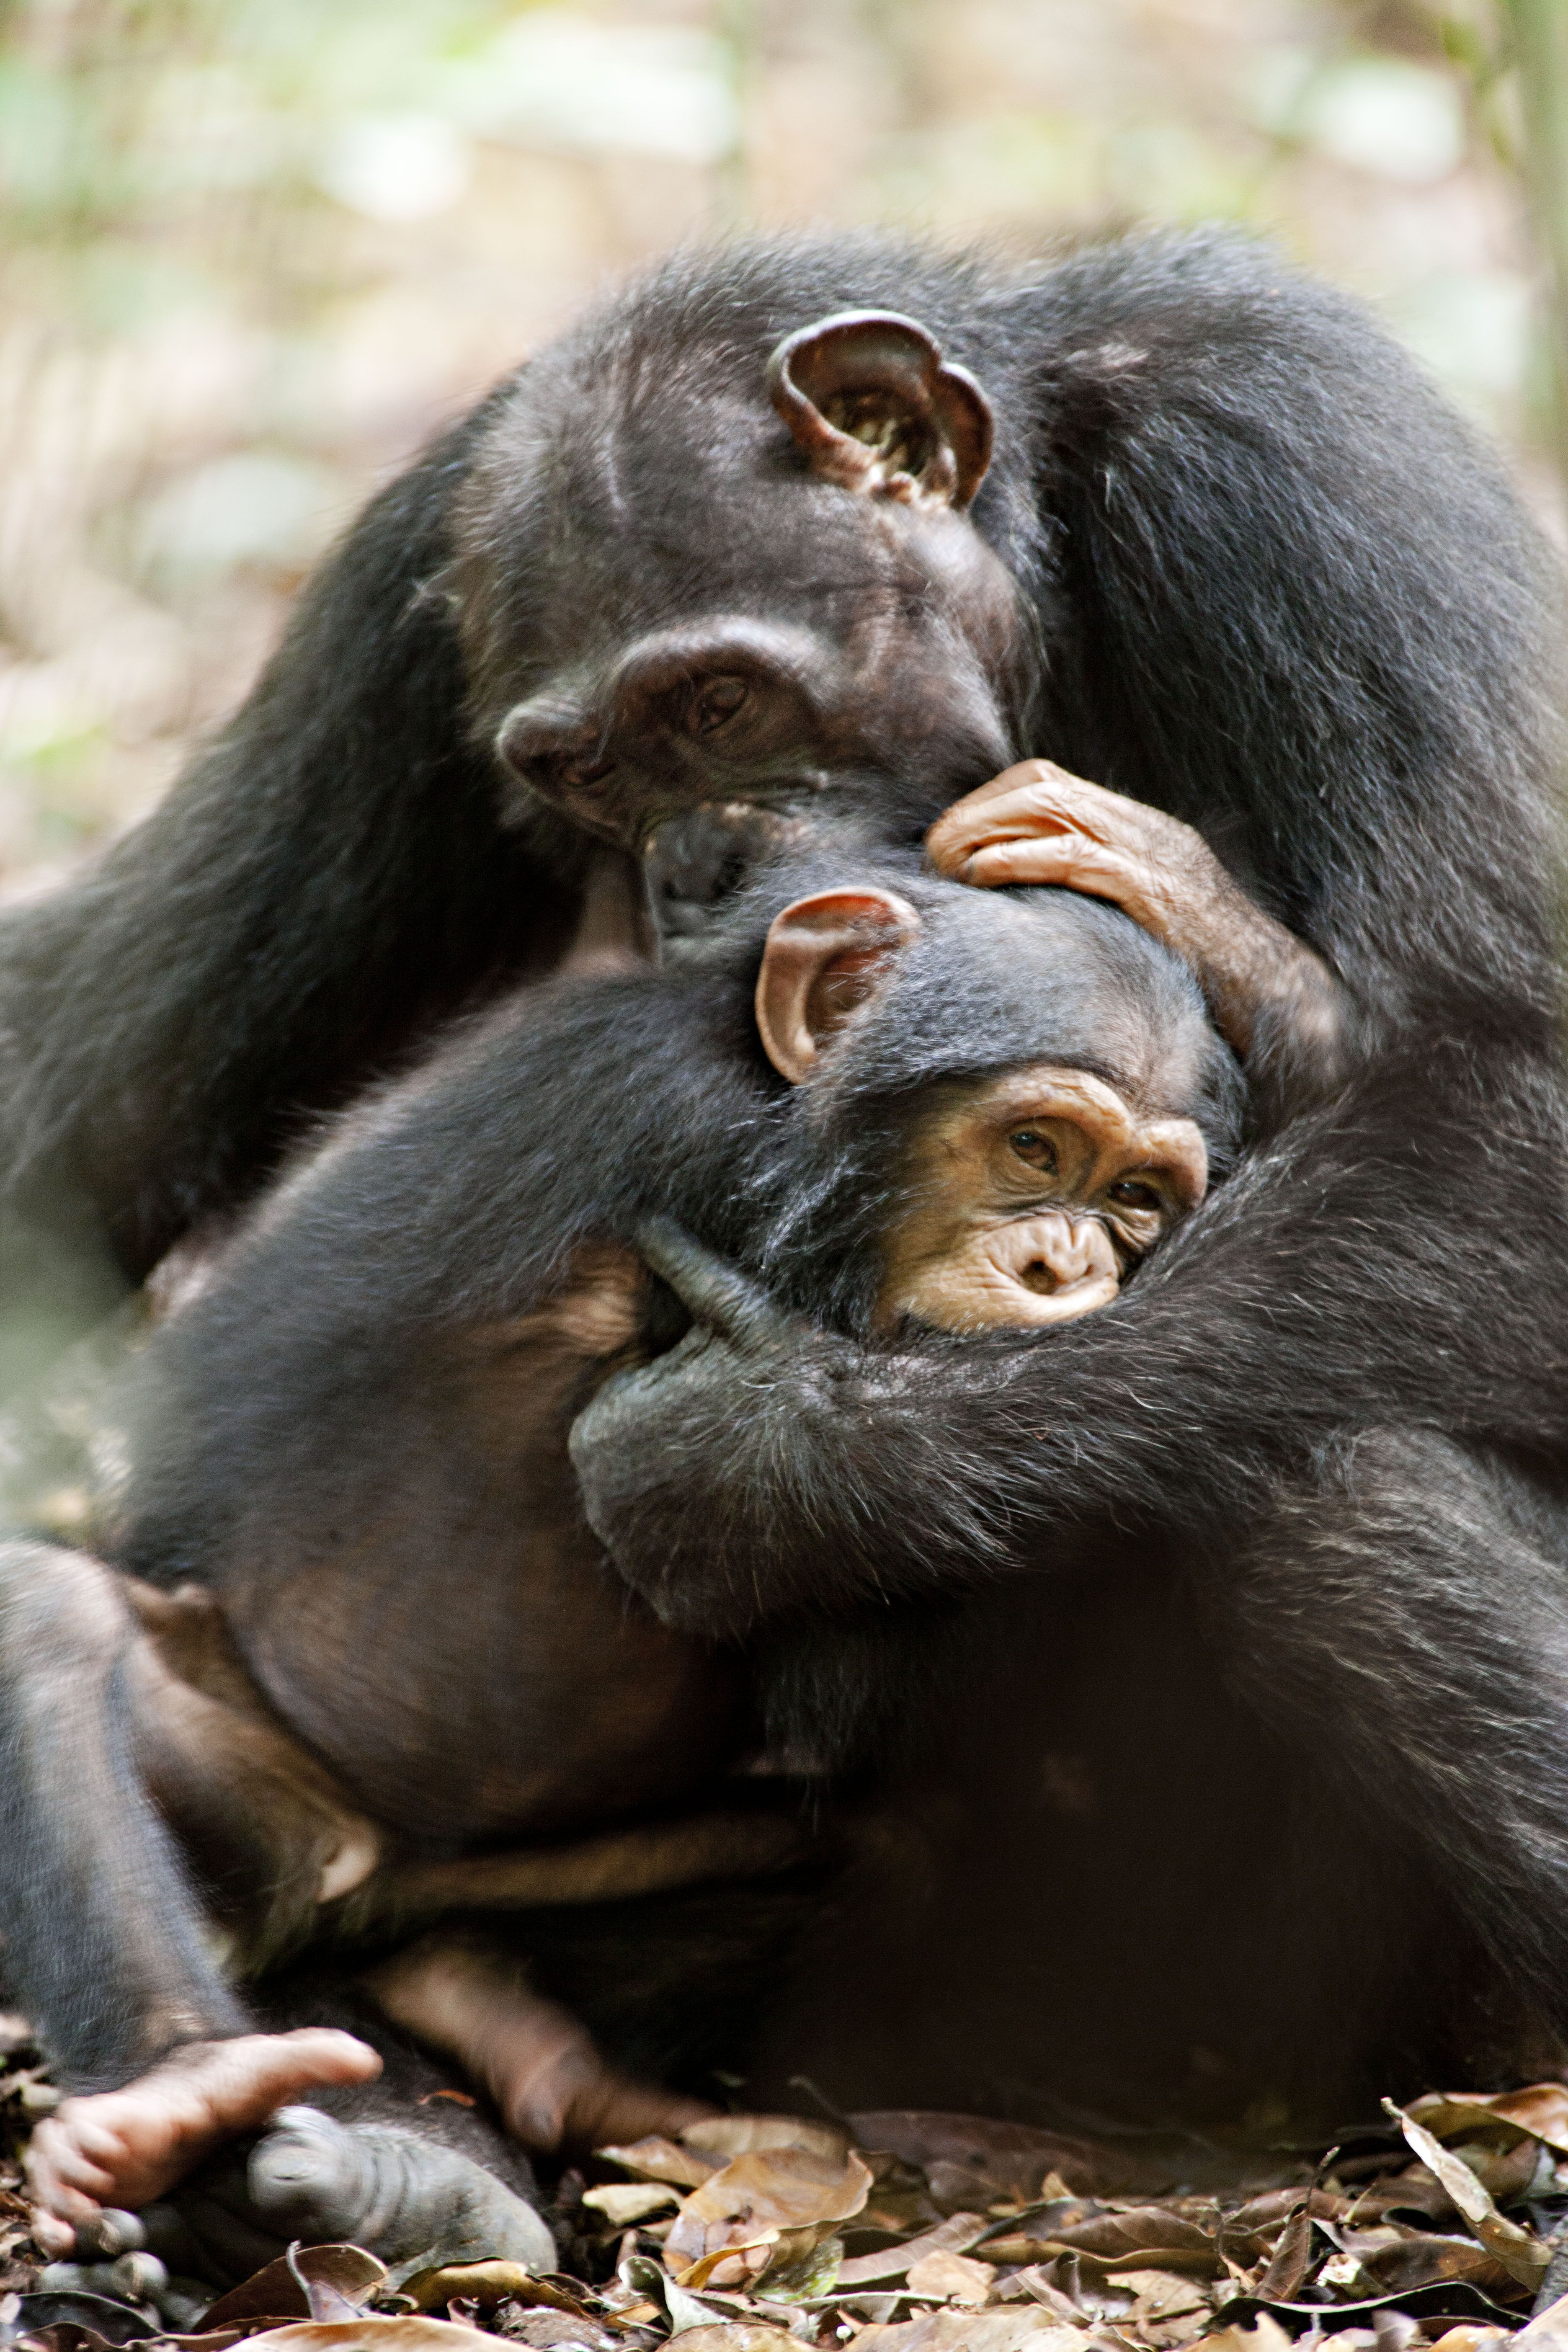 Female chimpanzees give birth to a single infant (twins are rare) every 5 to 6 years. A newborn chimpanzee weighs 3–4 pounds and is born helpless. Within a few days it is able to travel by clinging to its mother's stomach and by 5 to 7 months old it is strong enough to ride on her back.